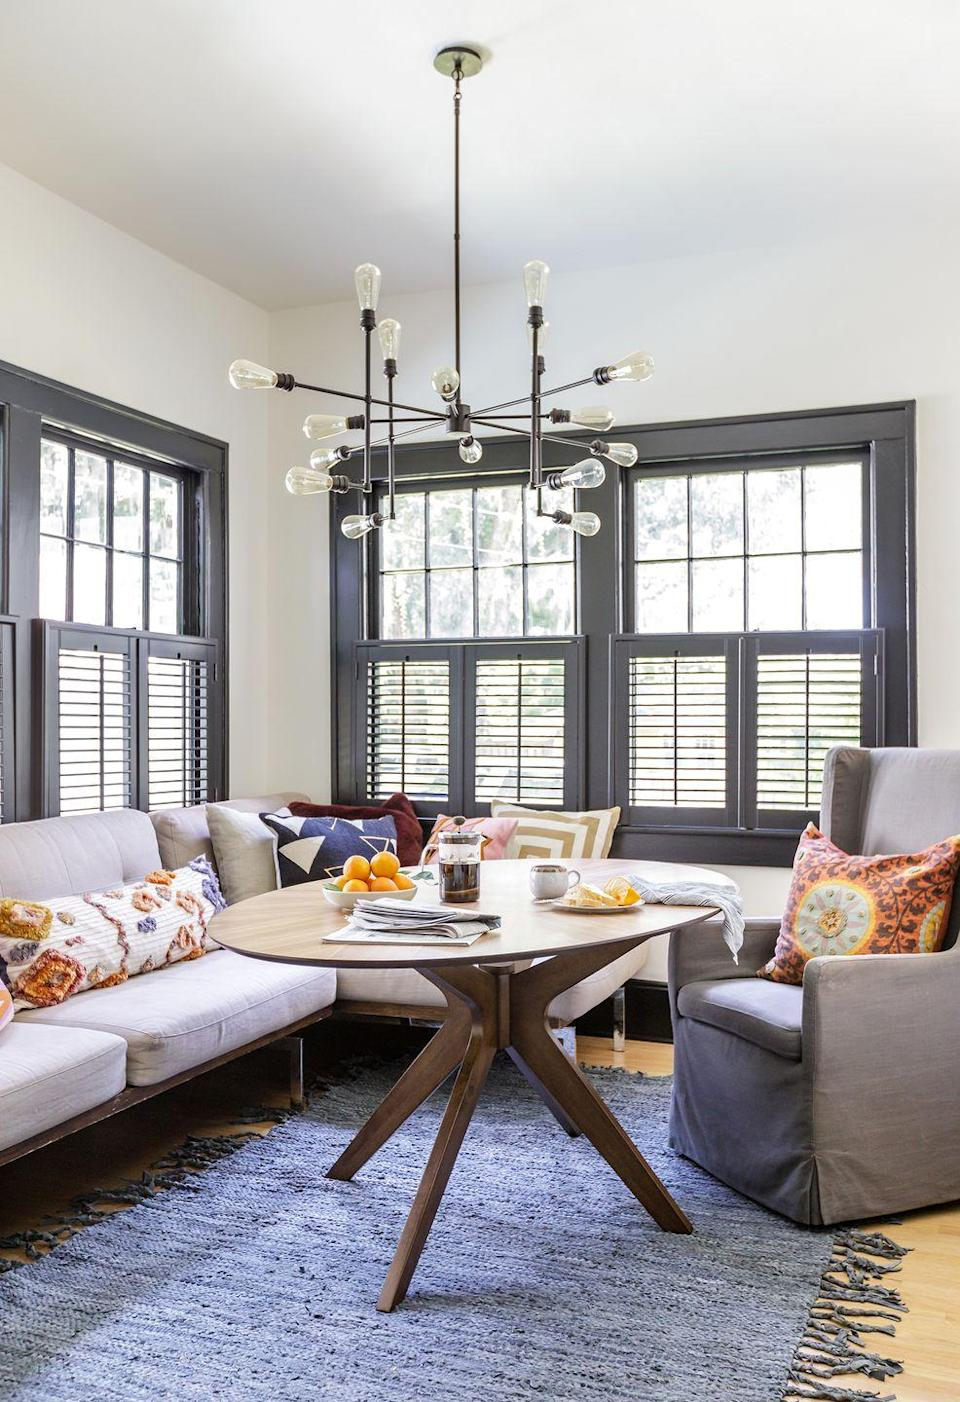 """<p>How could you possibly not have a good morning in this sun-drenched breakfast nook? Designer and occupant <a href=""""https://www.fitzpullins.com/"""" rel=""""nofollow noopener"""" target=""""_blank"""" data-ylk=""""slk:Fitz Pullins"""" class=""""link rapid-noclick-resp"""">Fitz Pullins</a> removed the French doors connecting the kitchen to this bonus space, enhancing flow and sunlight the bright yet neutral and calming colors along with the laidback materials that reflects the his own own warmth as well as the Florida landscape. And the best part? No building necessary—the banquette seating here is just the right-sized sofa. </p>"""